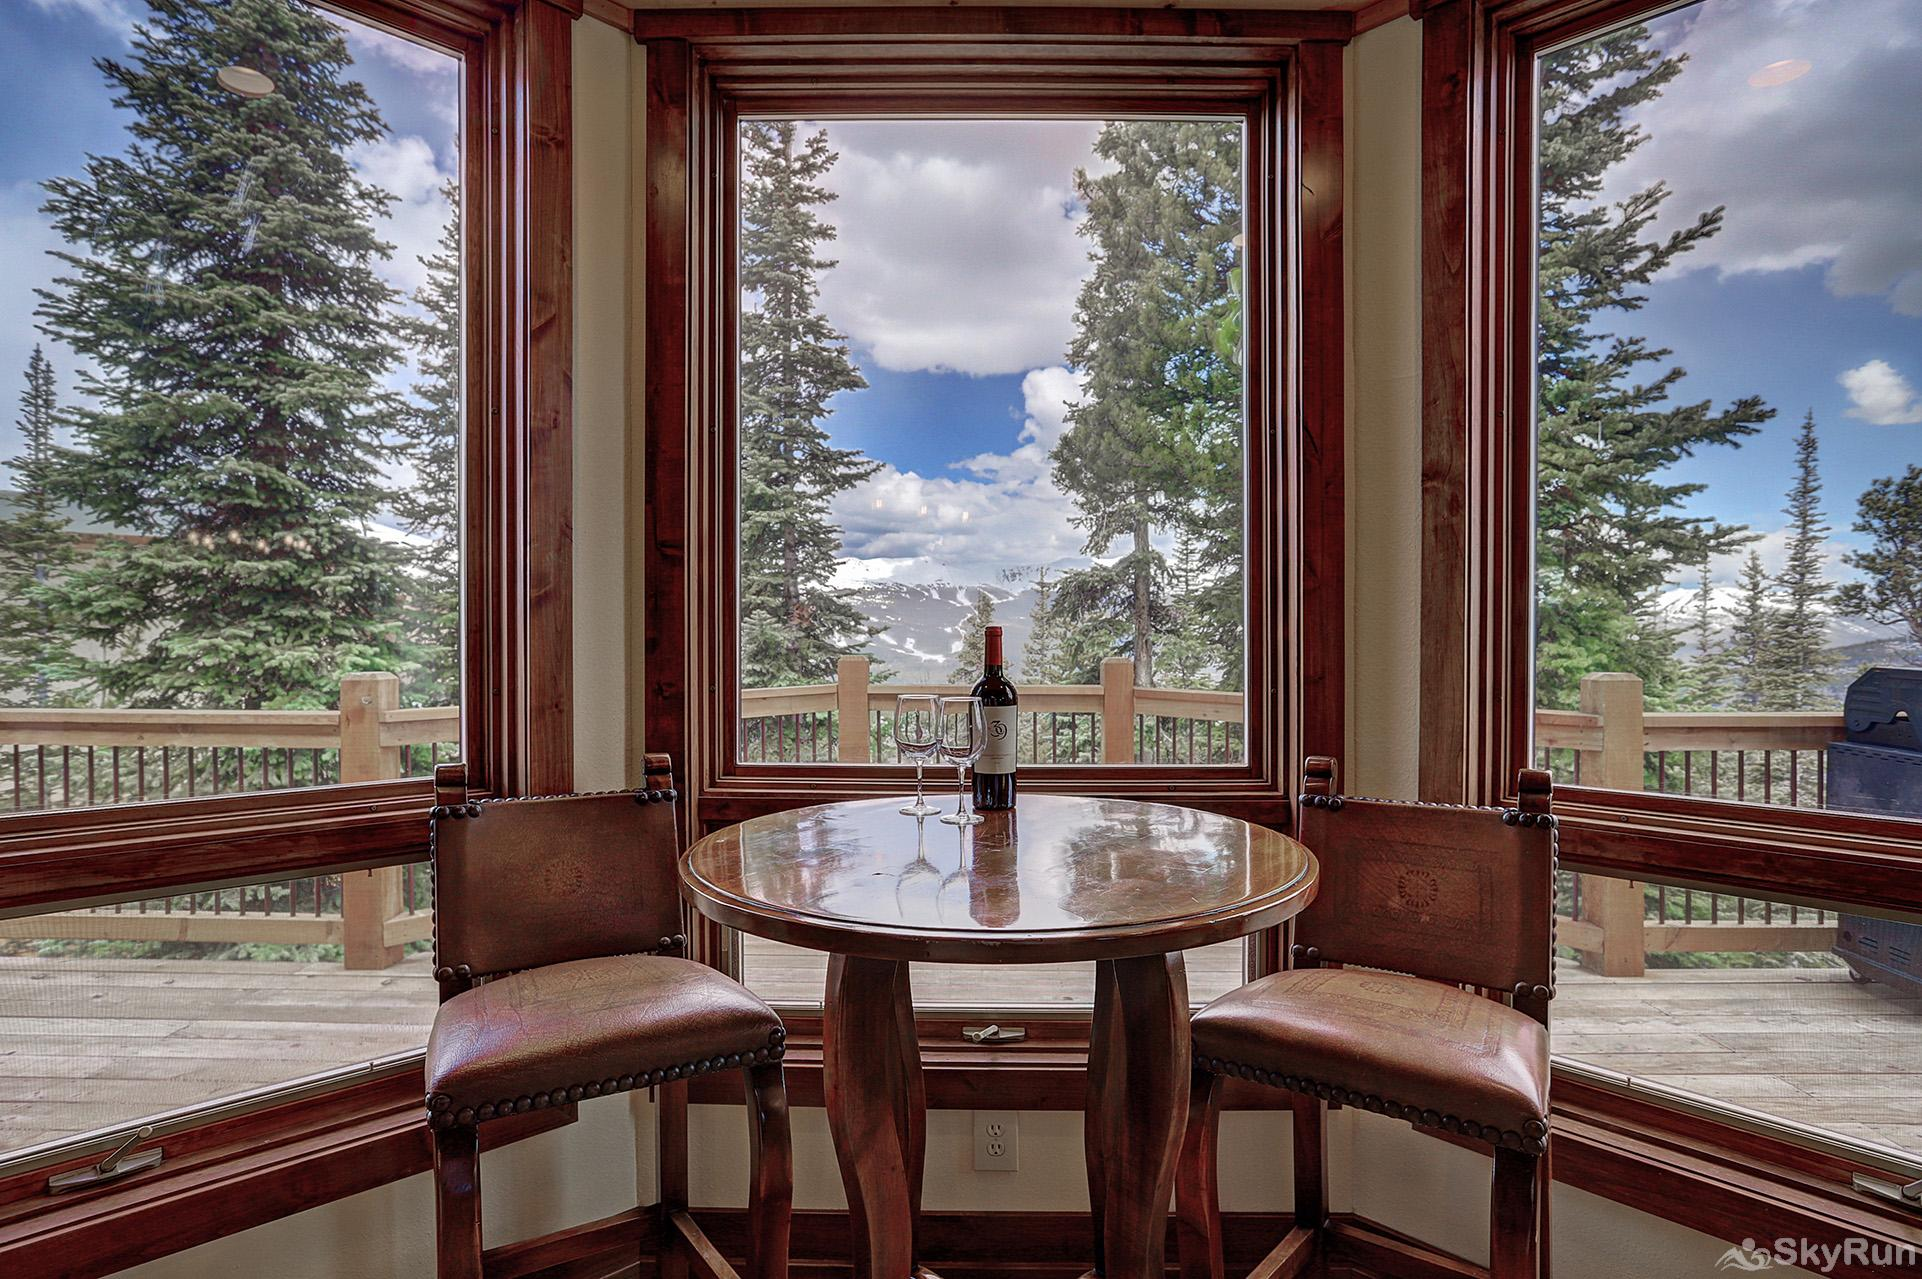 Mountain Vista Lodge Breakfast nook